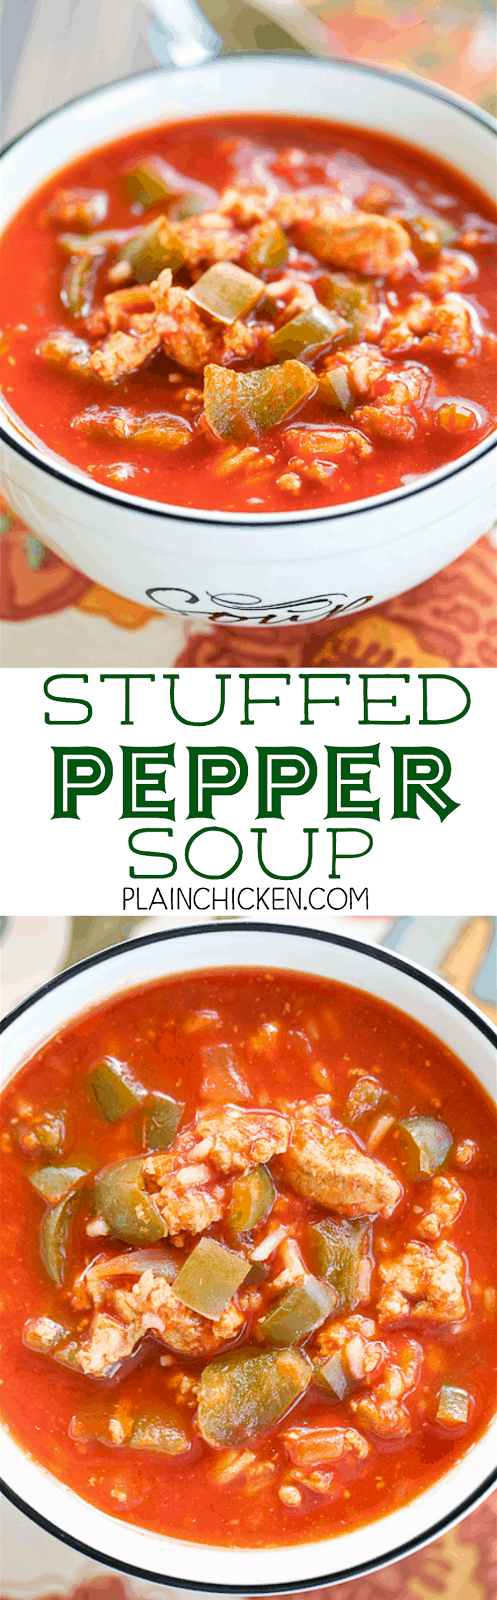 Stuffed Pepper Soup - ready in 30 minutes! Ground turkey, green peppers, onion, garlic, tomato soup, beef broth, crushed tomatoes and brown rice. SO good!! Great for a crowd!!